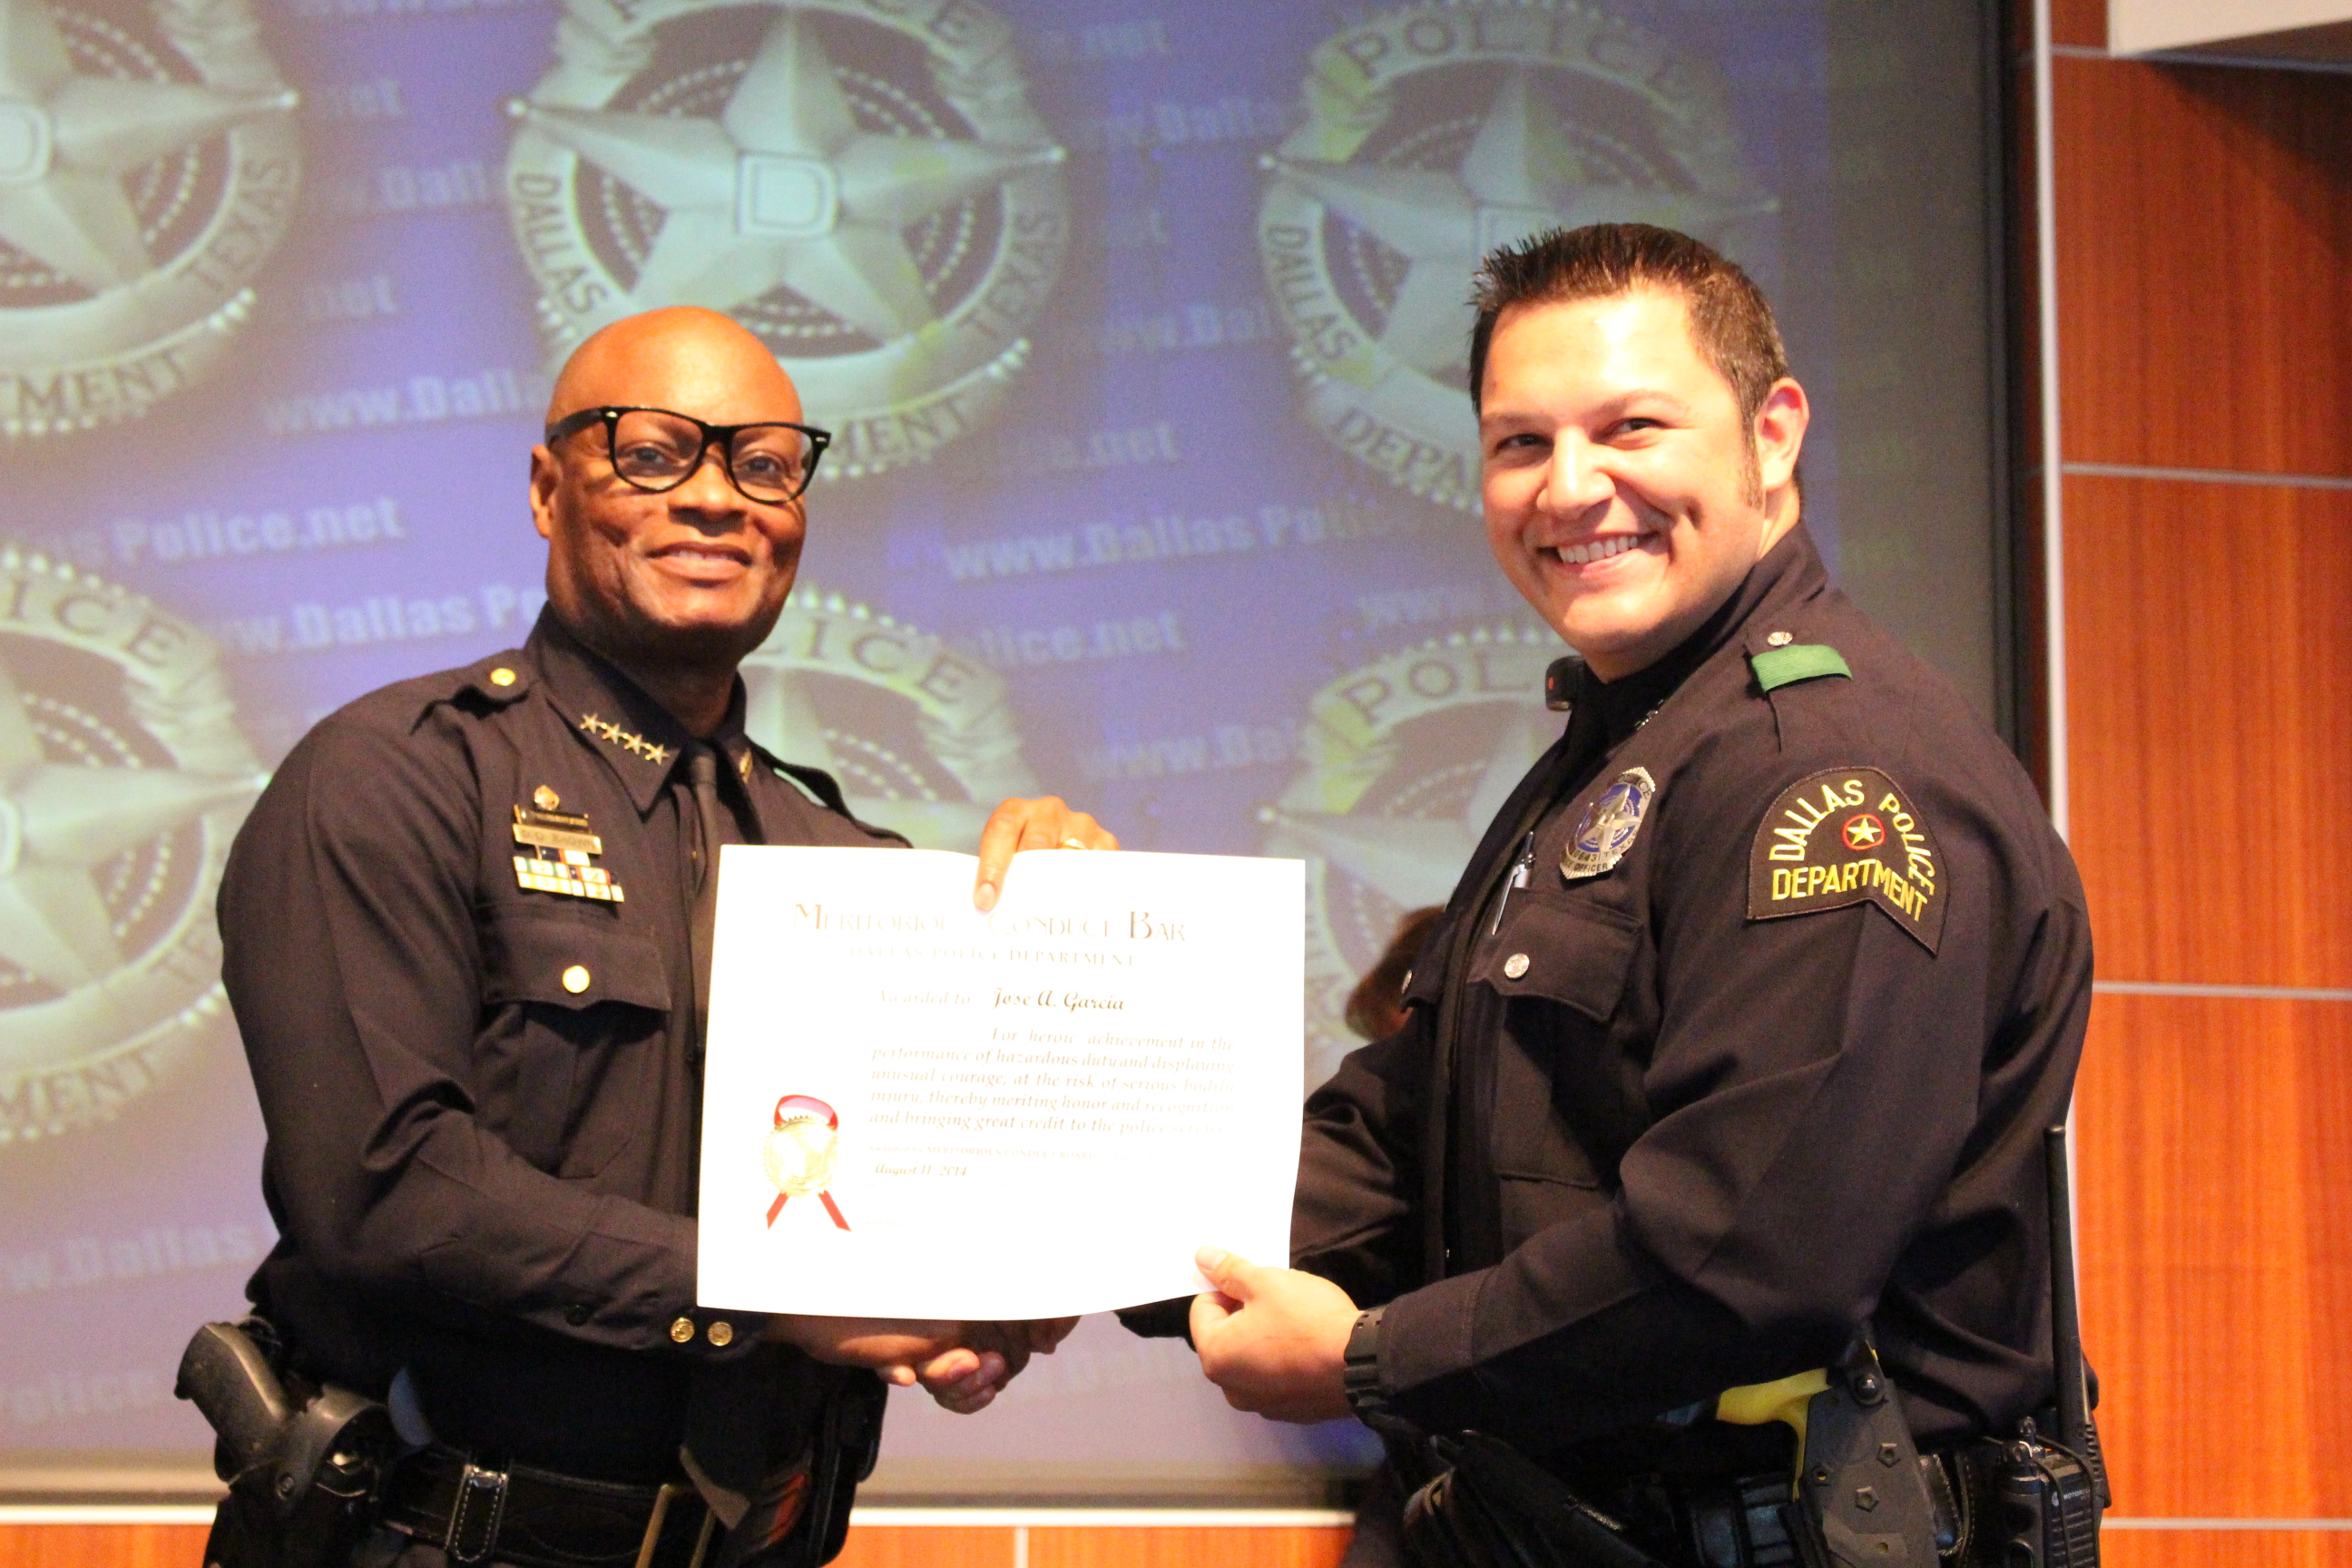 Dallas Police Department Awards Ceremony | DPD Beat